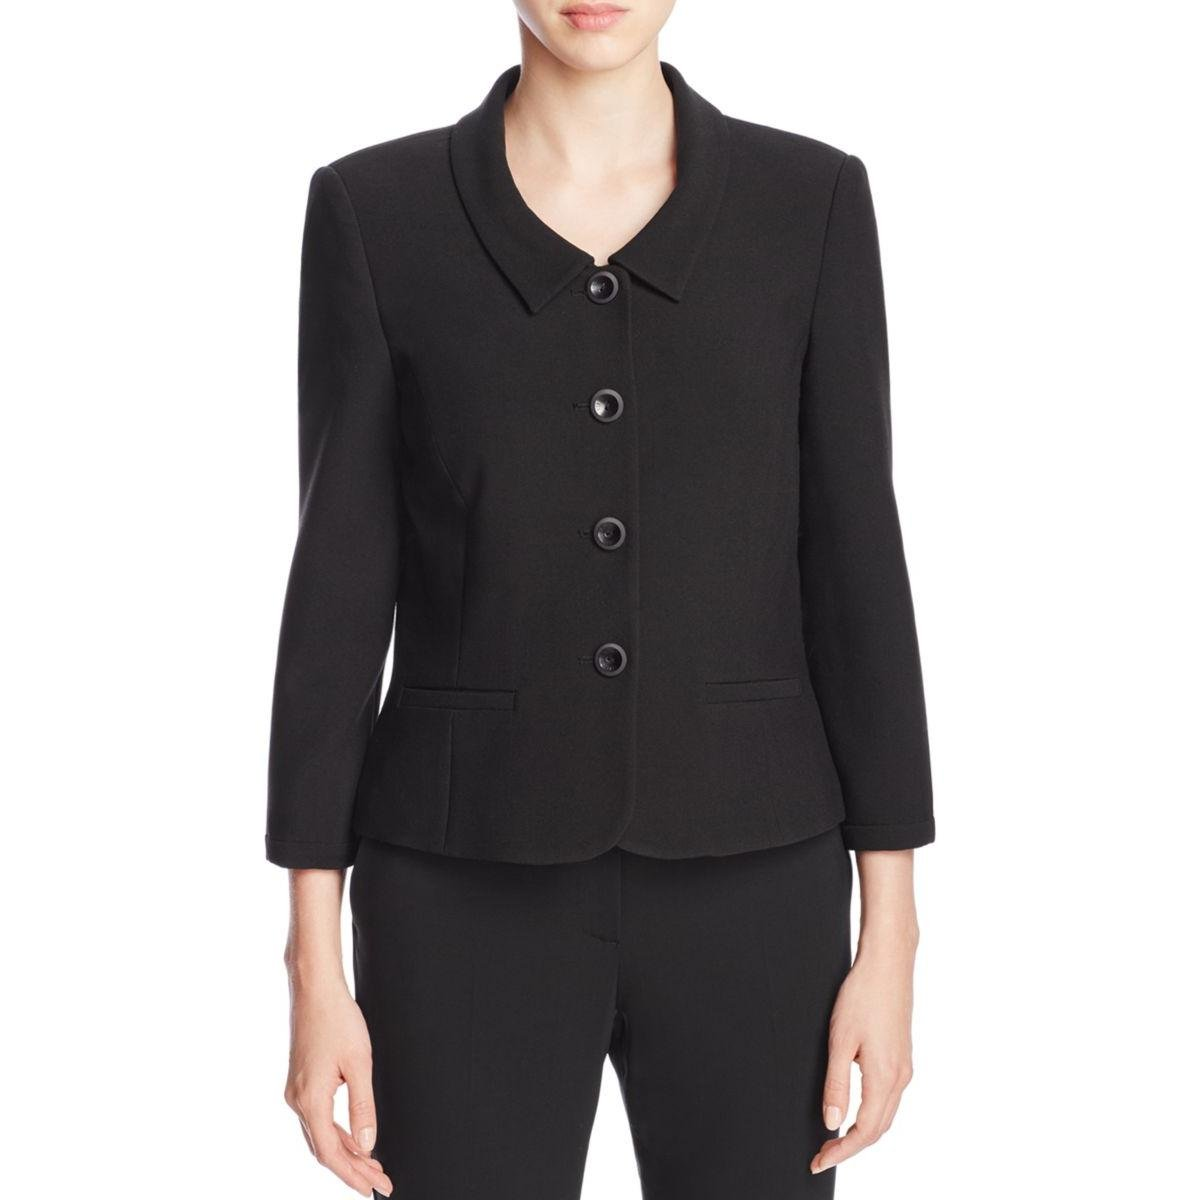 Finity Womens Crepe Fitted Four-Button Blazer Black 12